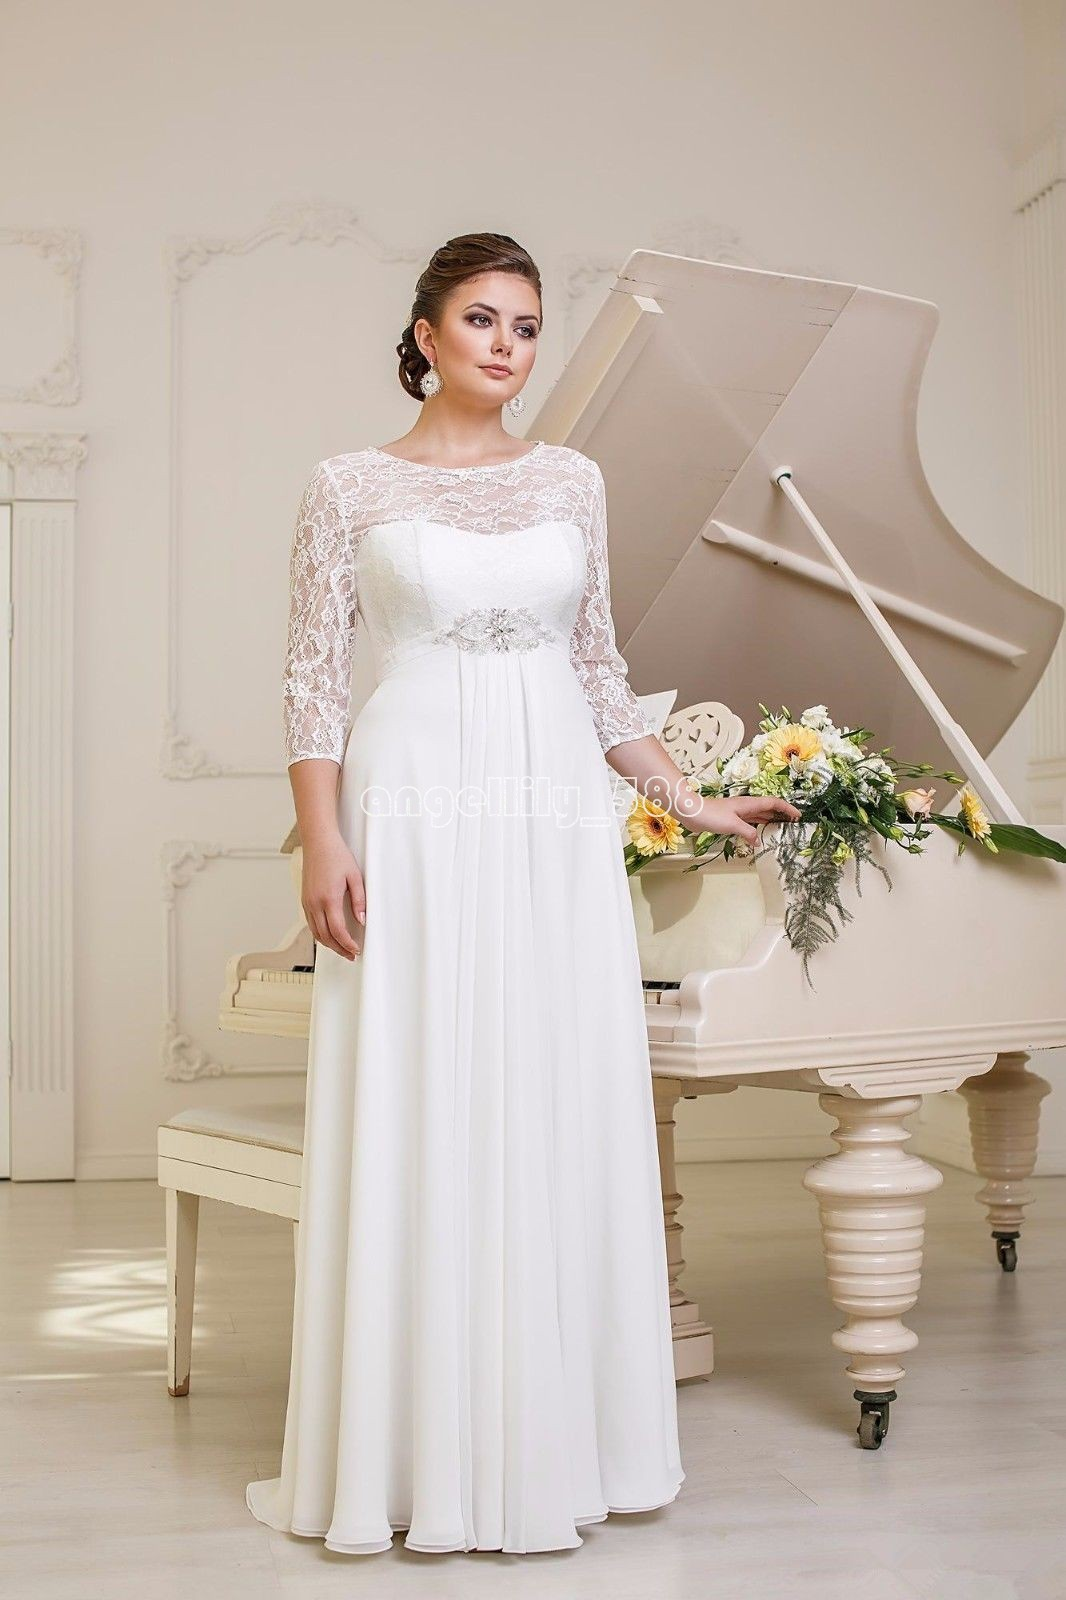 New Lace Chiffon Wedding Dresses Bridal Gown Custom